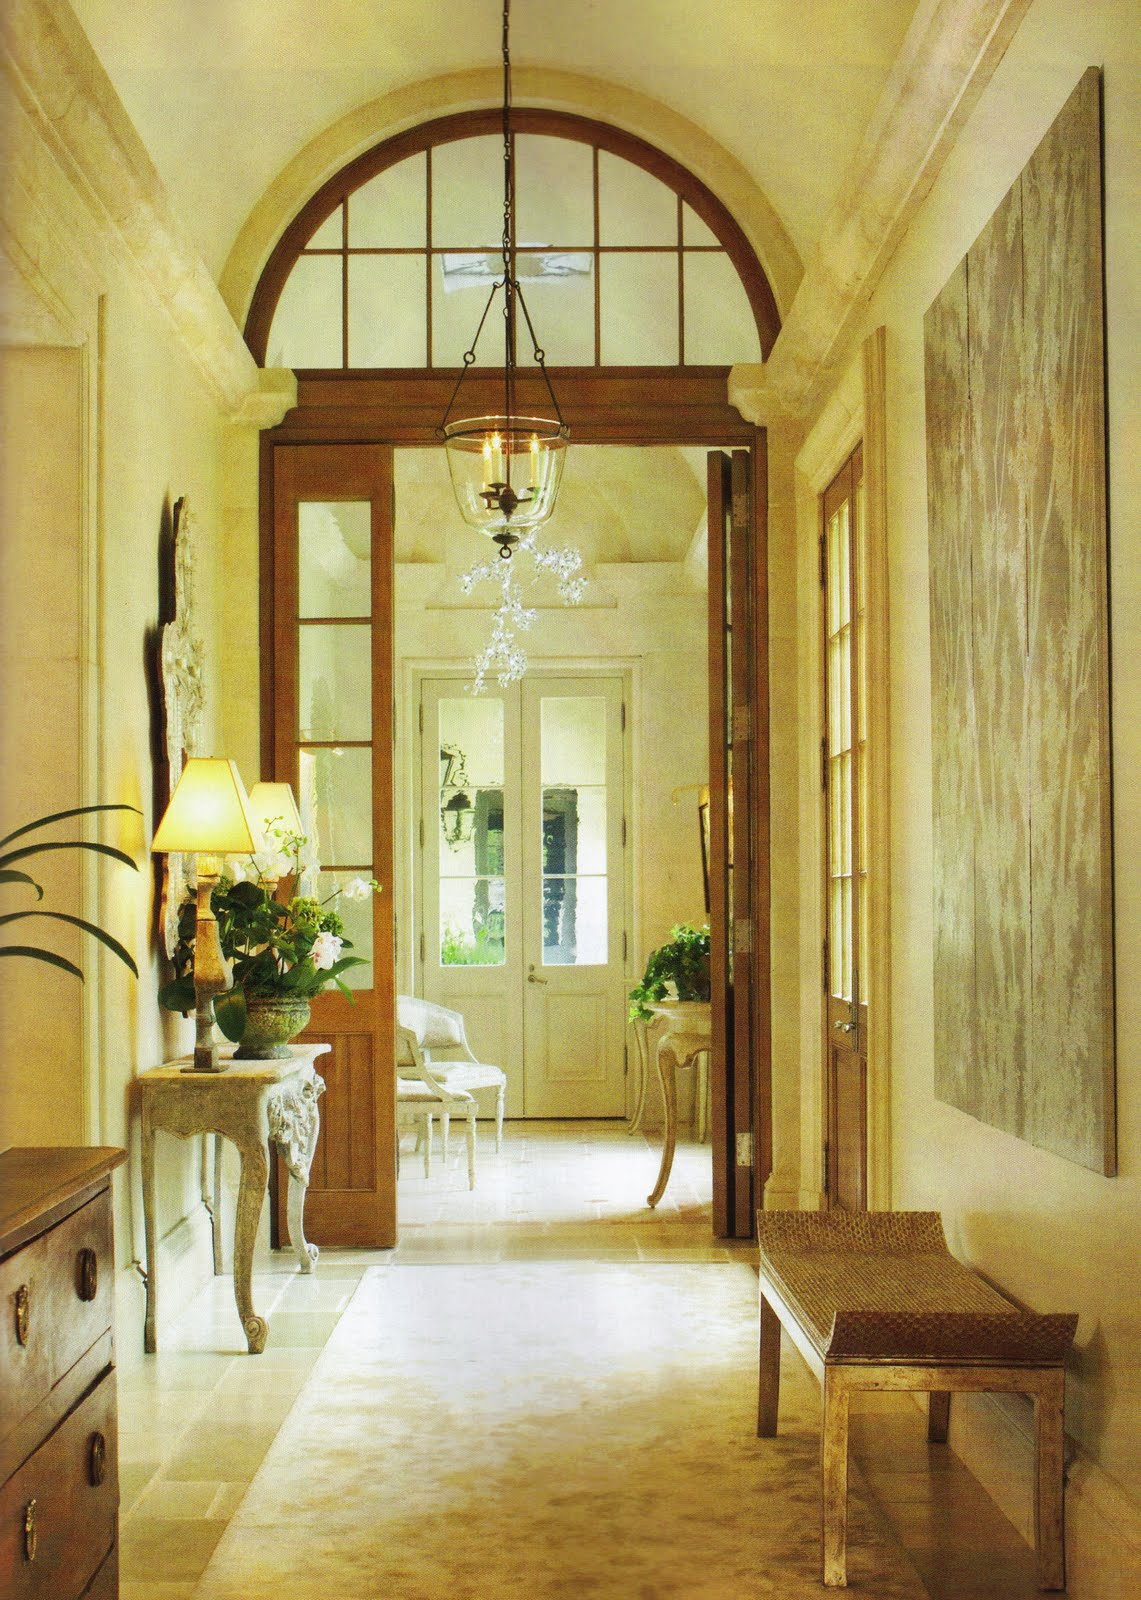 Us Interior Designs Thomas Pheasant Interior Designer - Interieur Design Thomas More